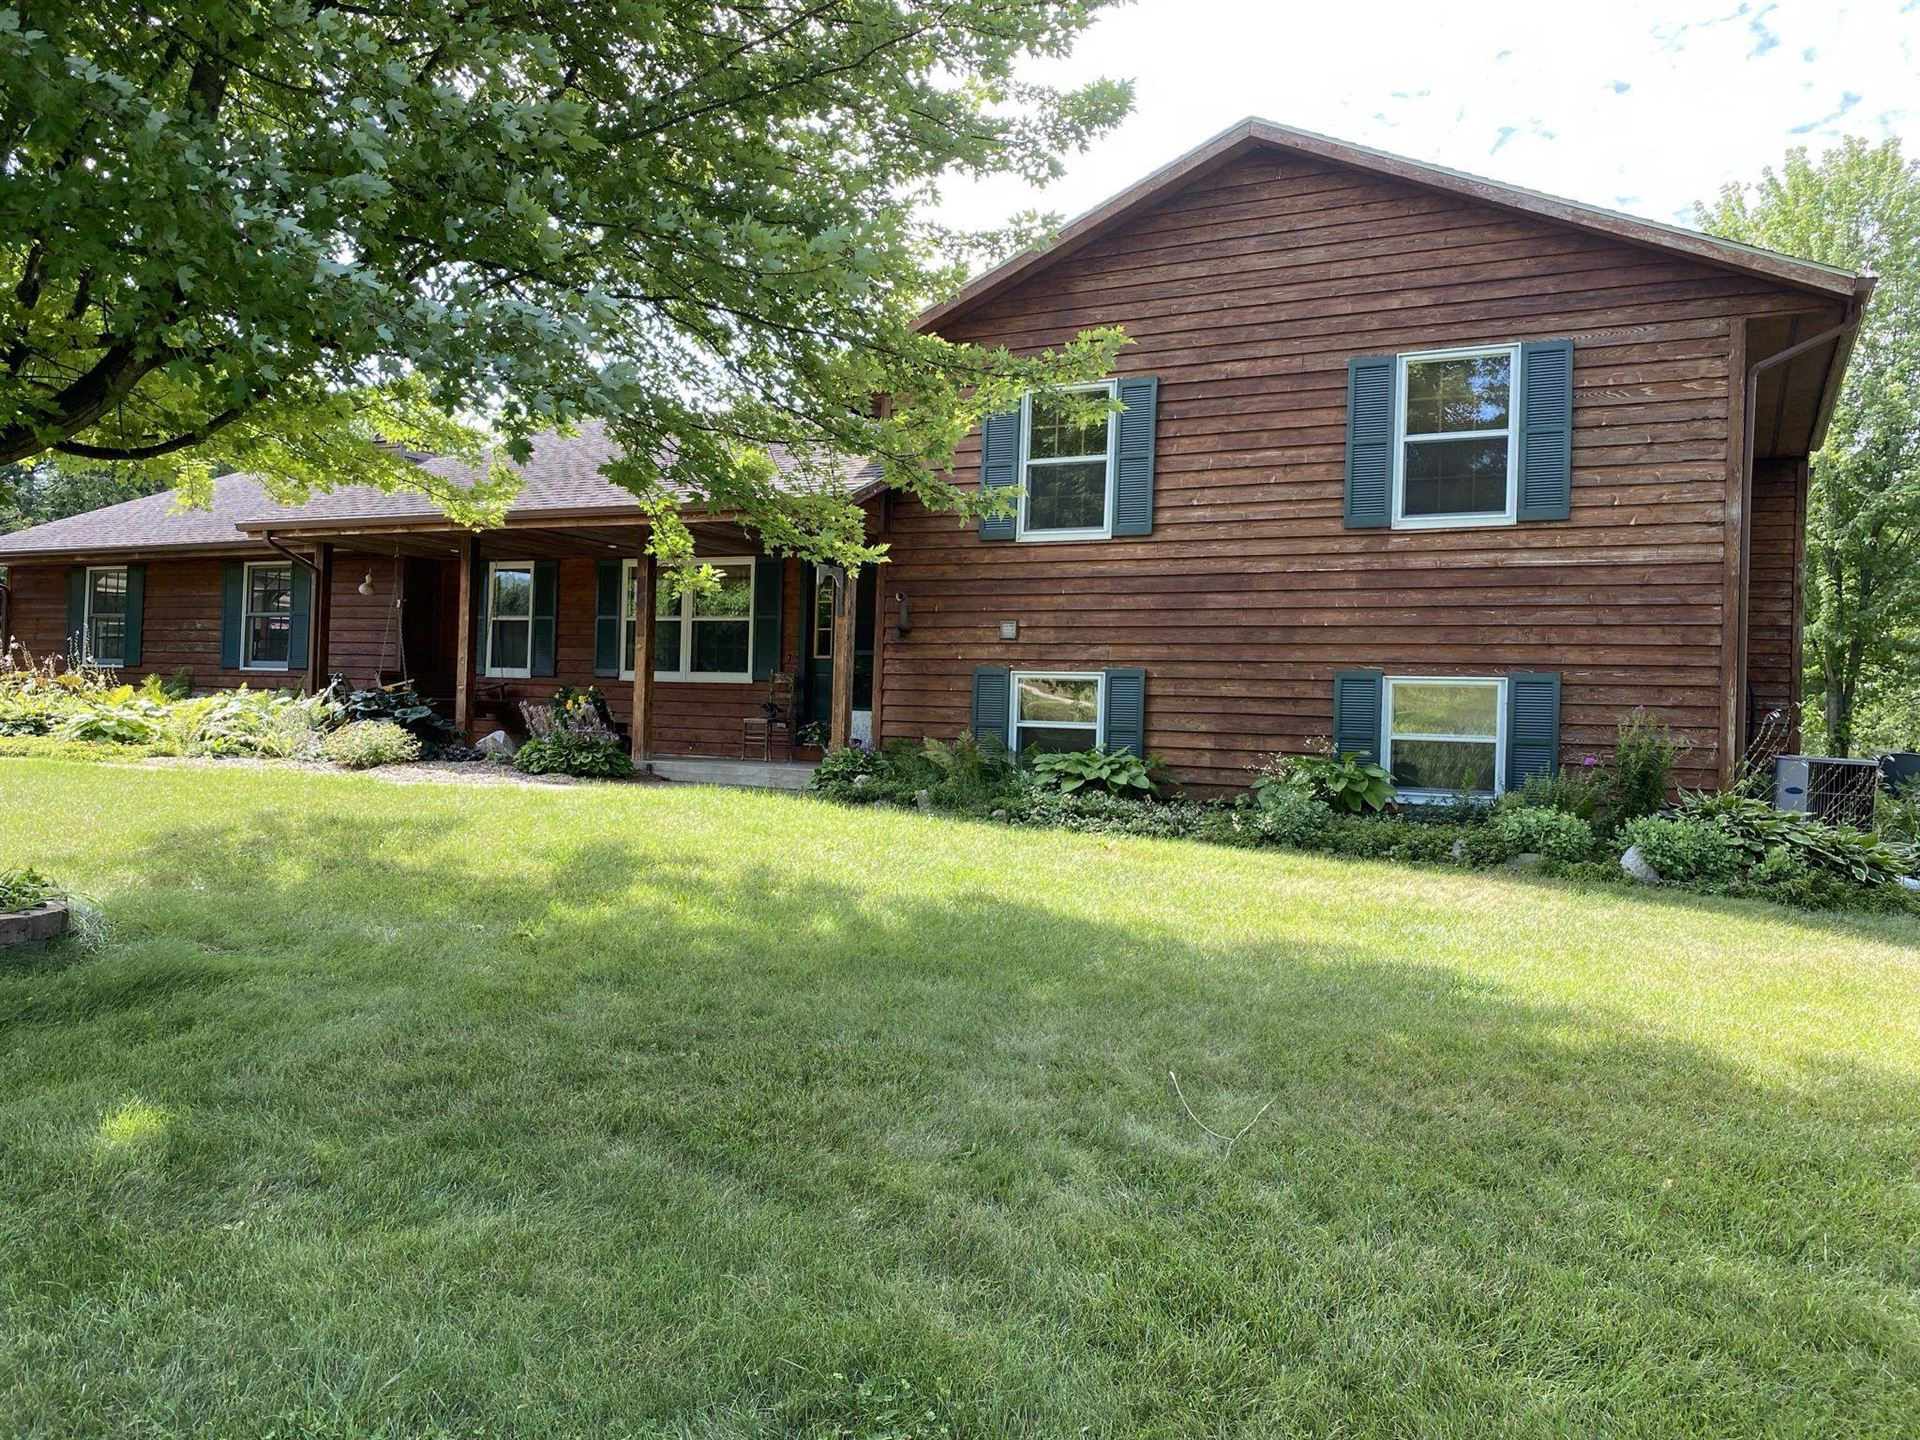 4412 E Pic A Dilly Dr, Janesville, WI 53546 - #: 1920977